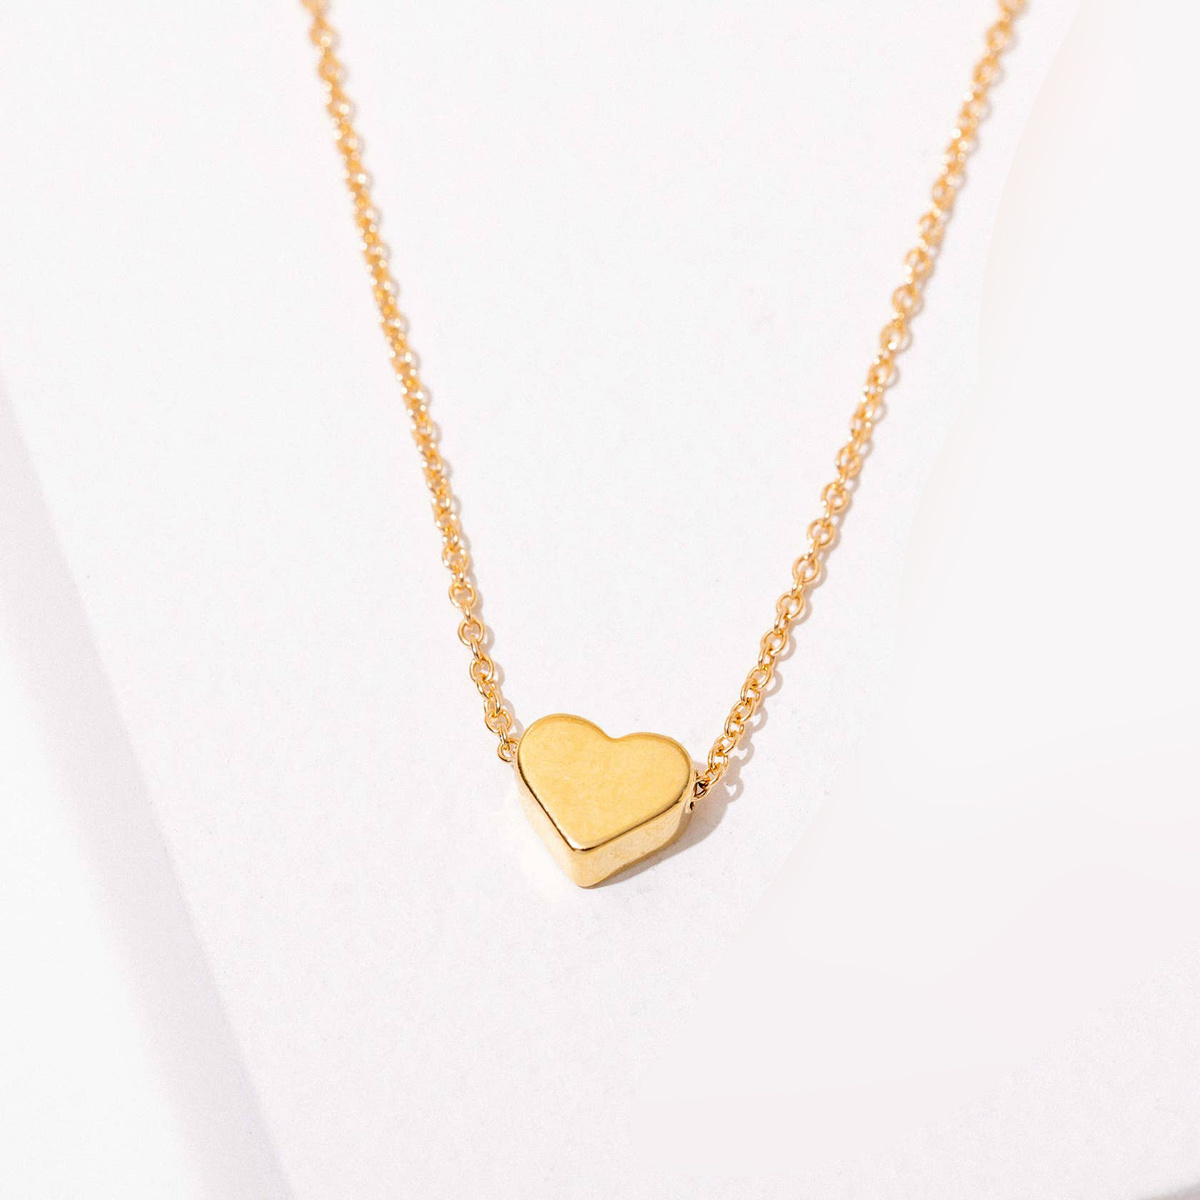 Larissa Loden Jewelry - LLJ 24k Gold Plated Heart Necklace